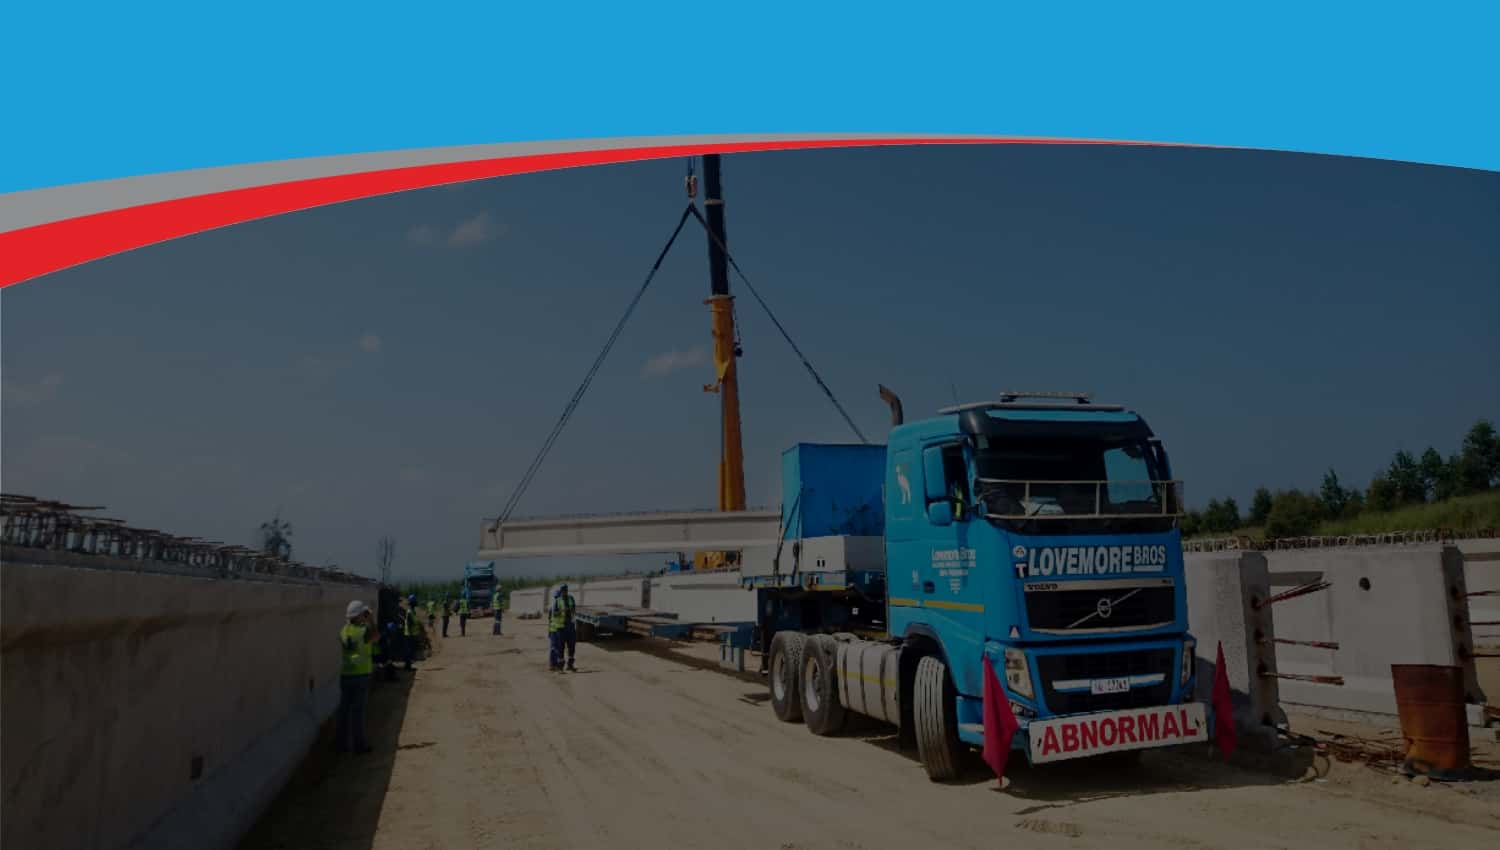 Lovemore Bros Machine movers, rigging and abnormal load